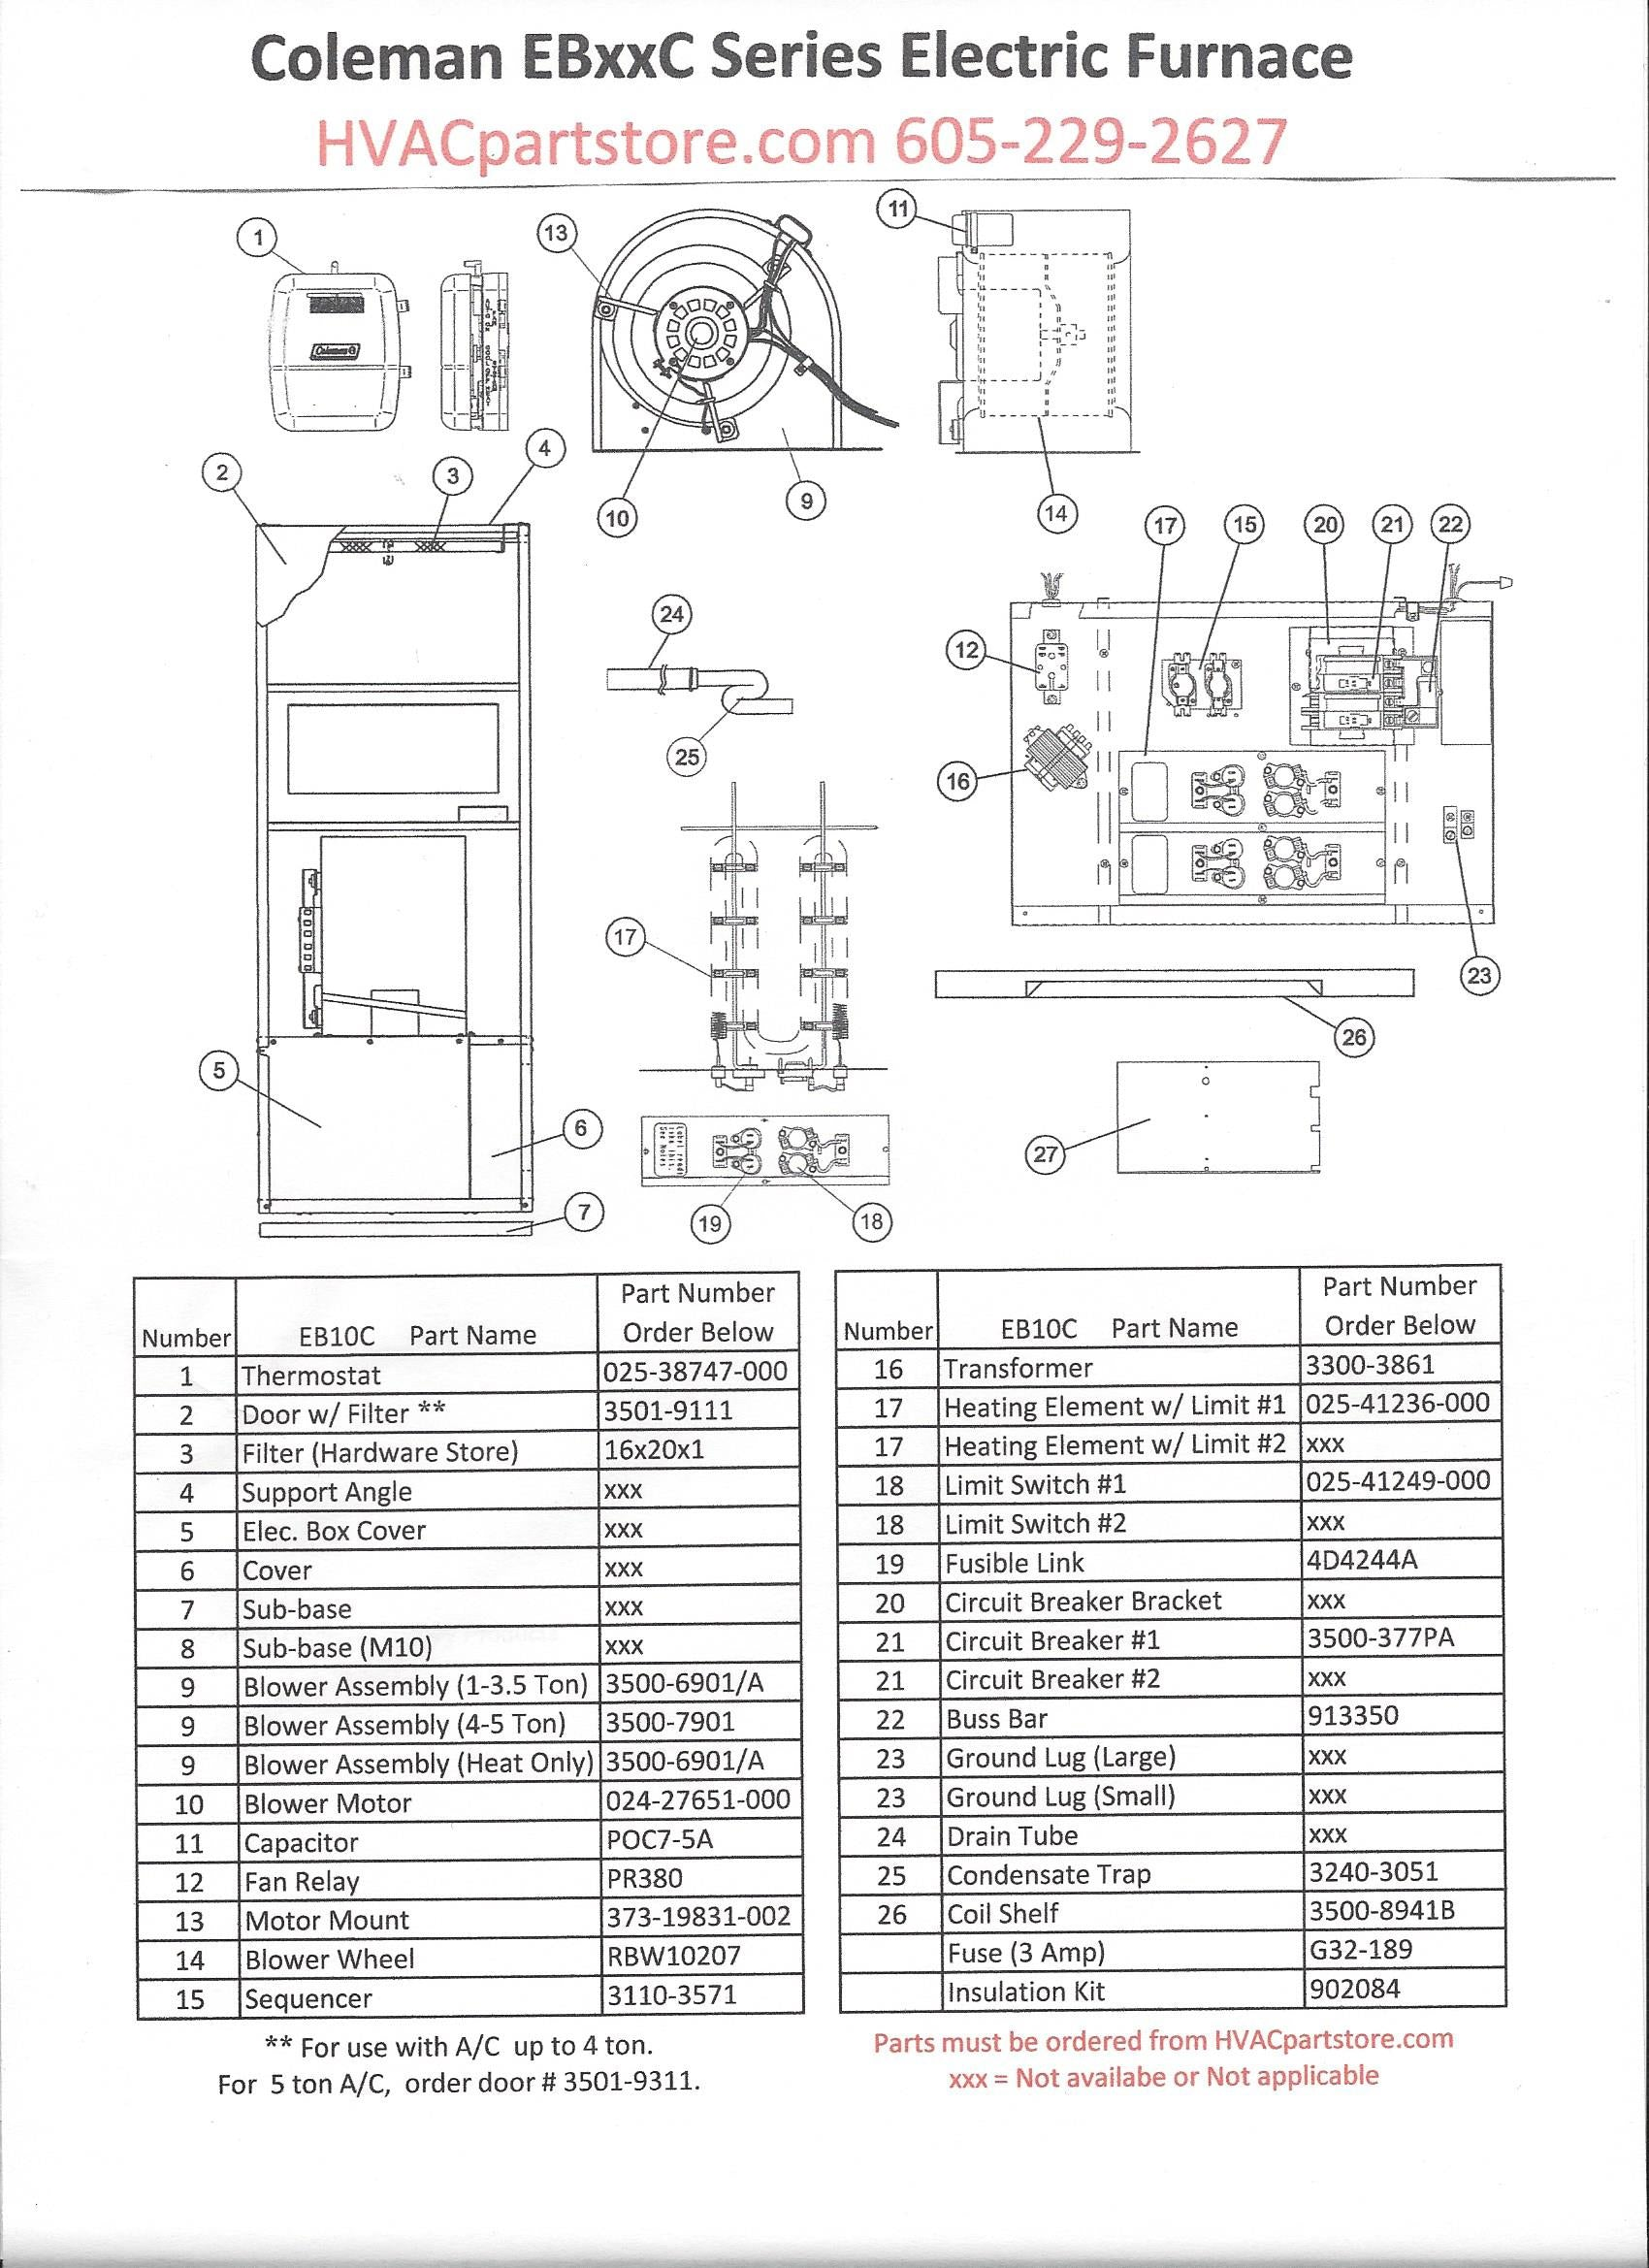 nordyne ac wiring diagram with Eb10c Coleman Electric Furnace Parts on Low Voltage Thermostat Wiring Diagram Furnace as well Nordyne Gas Furnace Wiring Schematics also Intertherm Gas Furnace Wiring Diagram also justanswer   hvac 6vk4ubryant350mavjustreplacedinducerfanfurnace in addition .